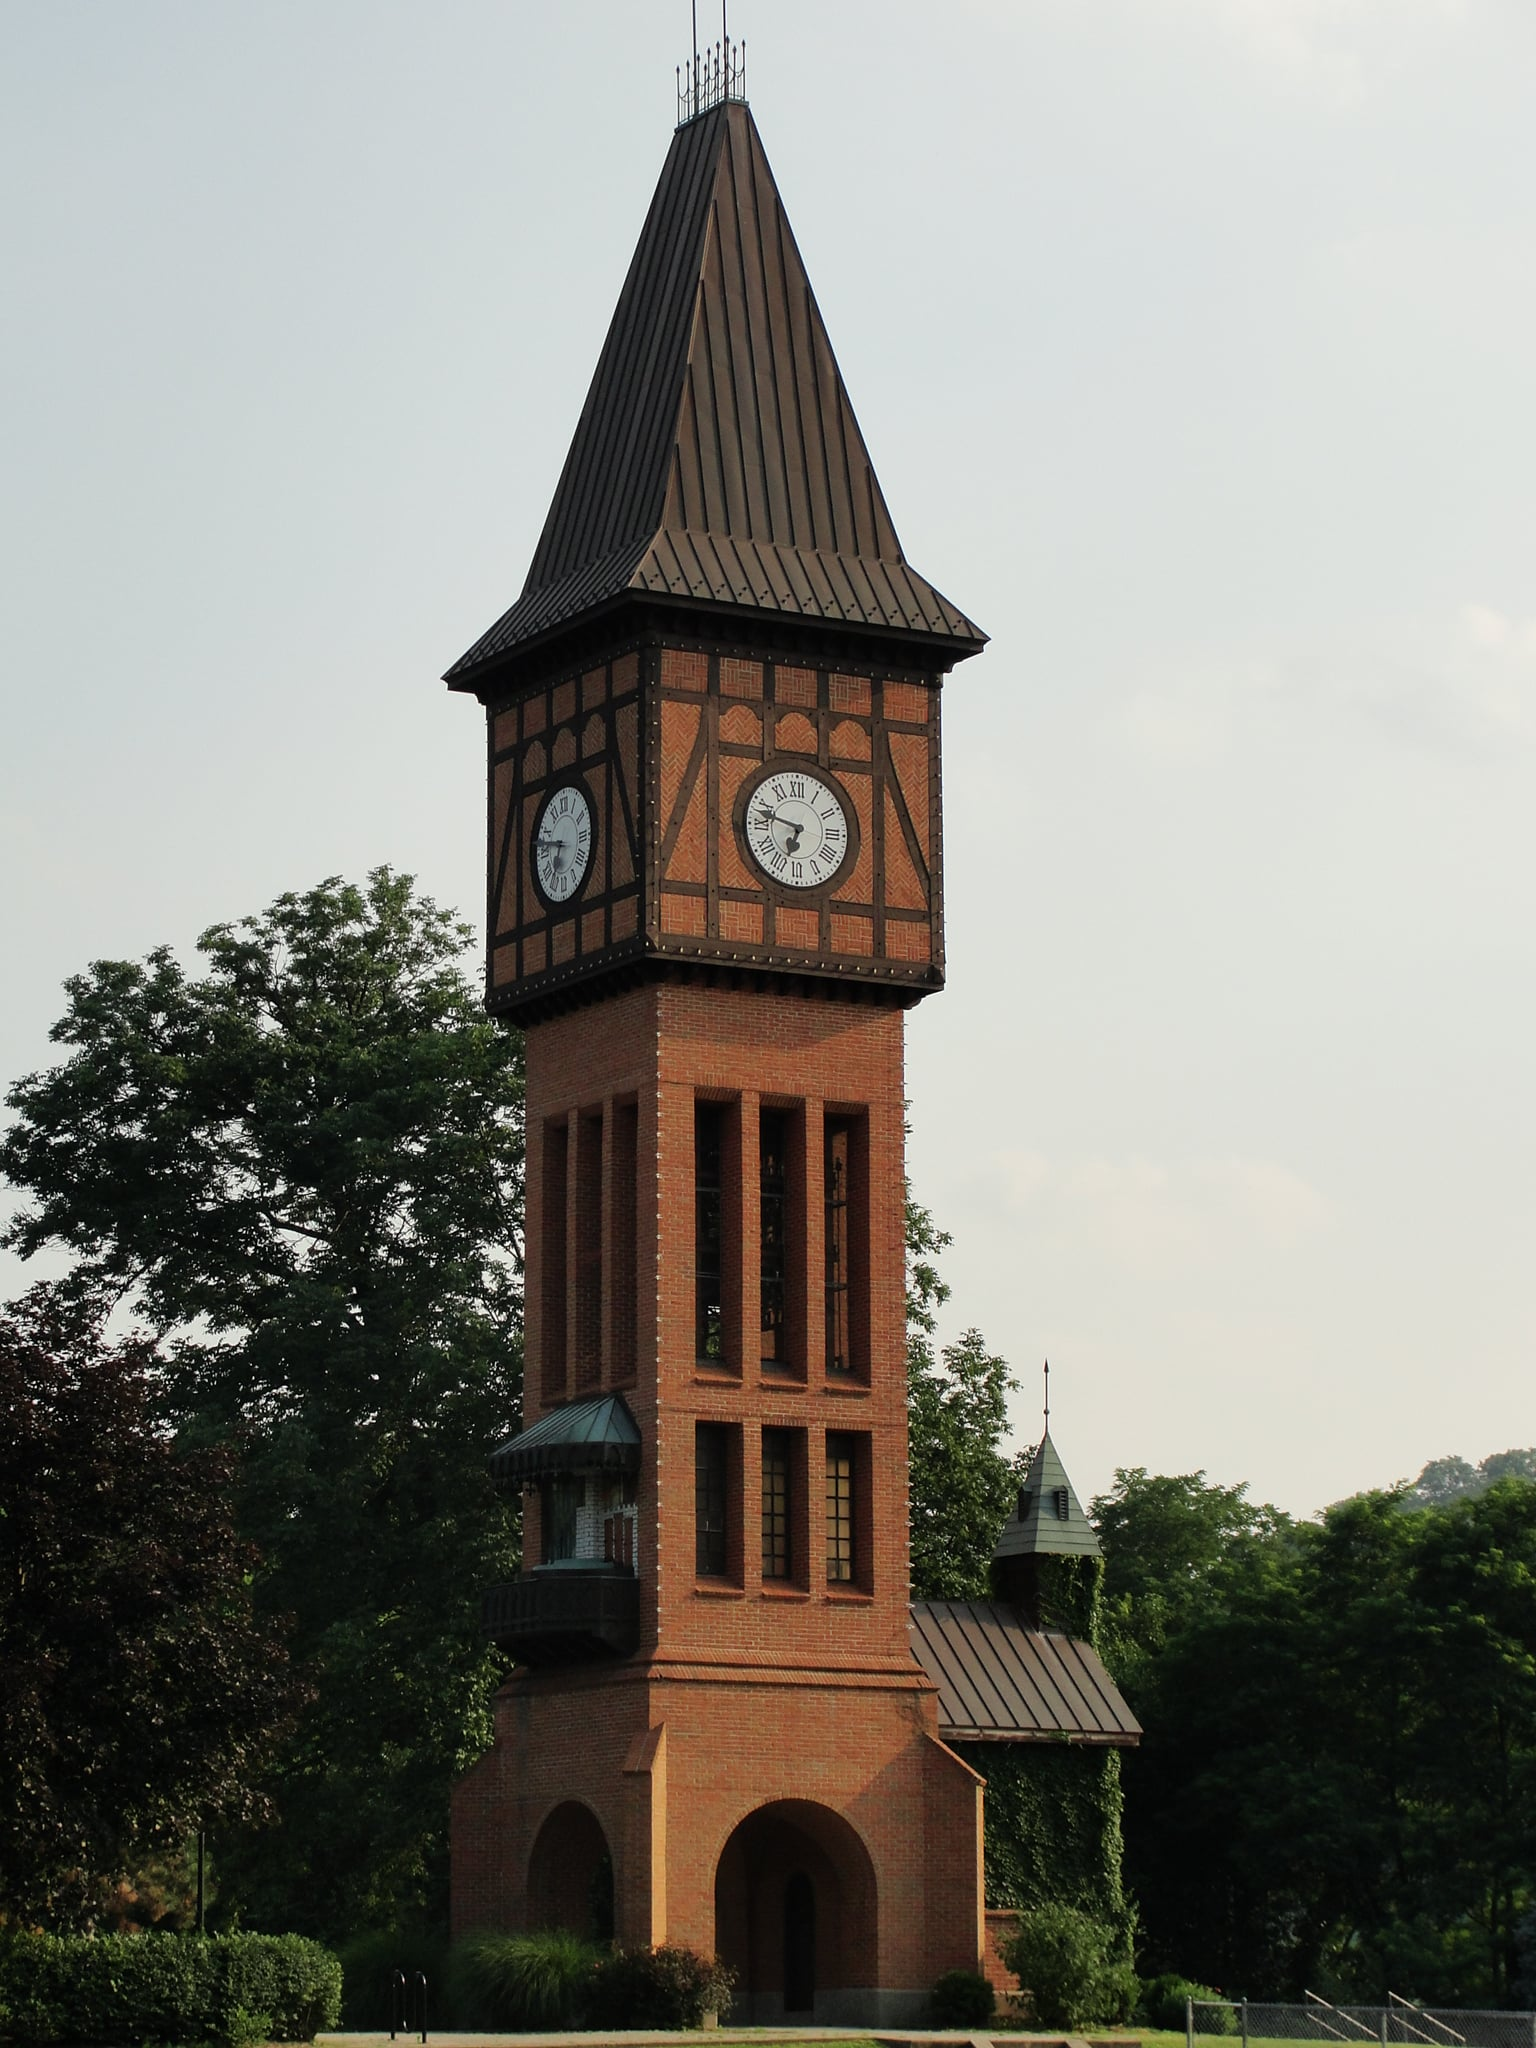 Tall red brick clock tower